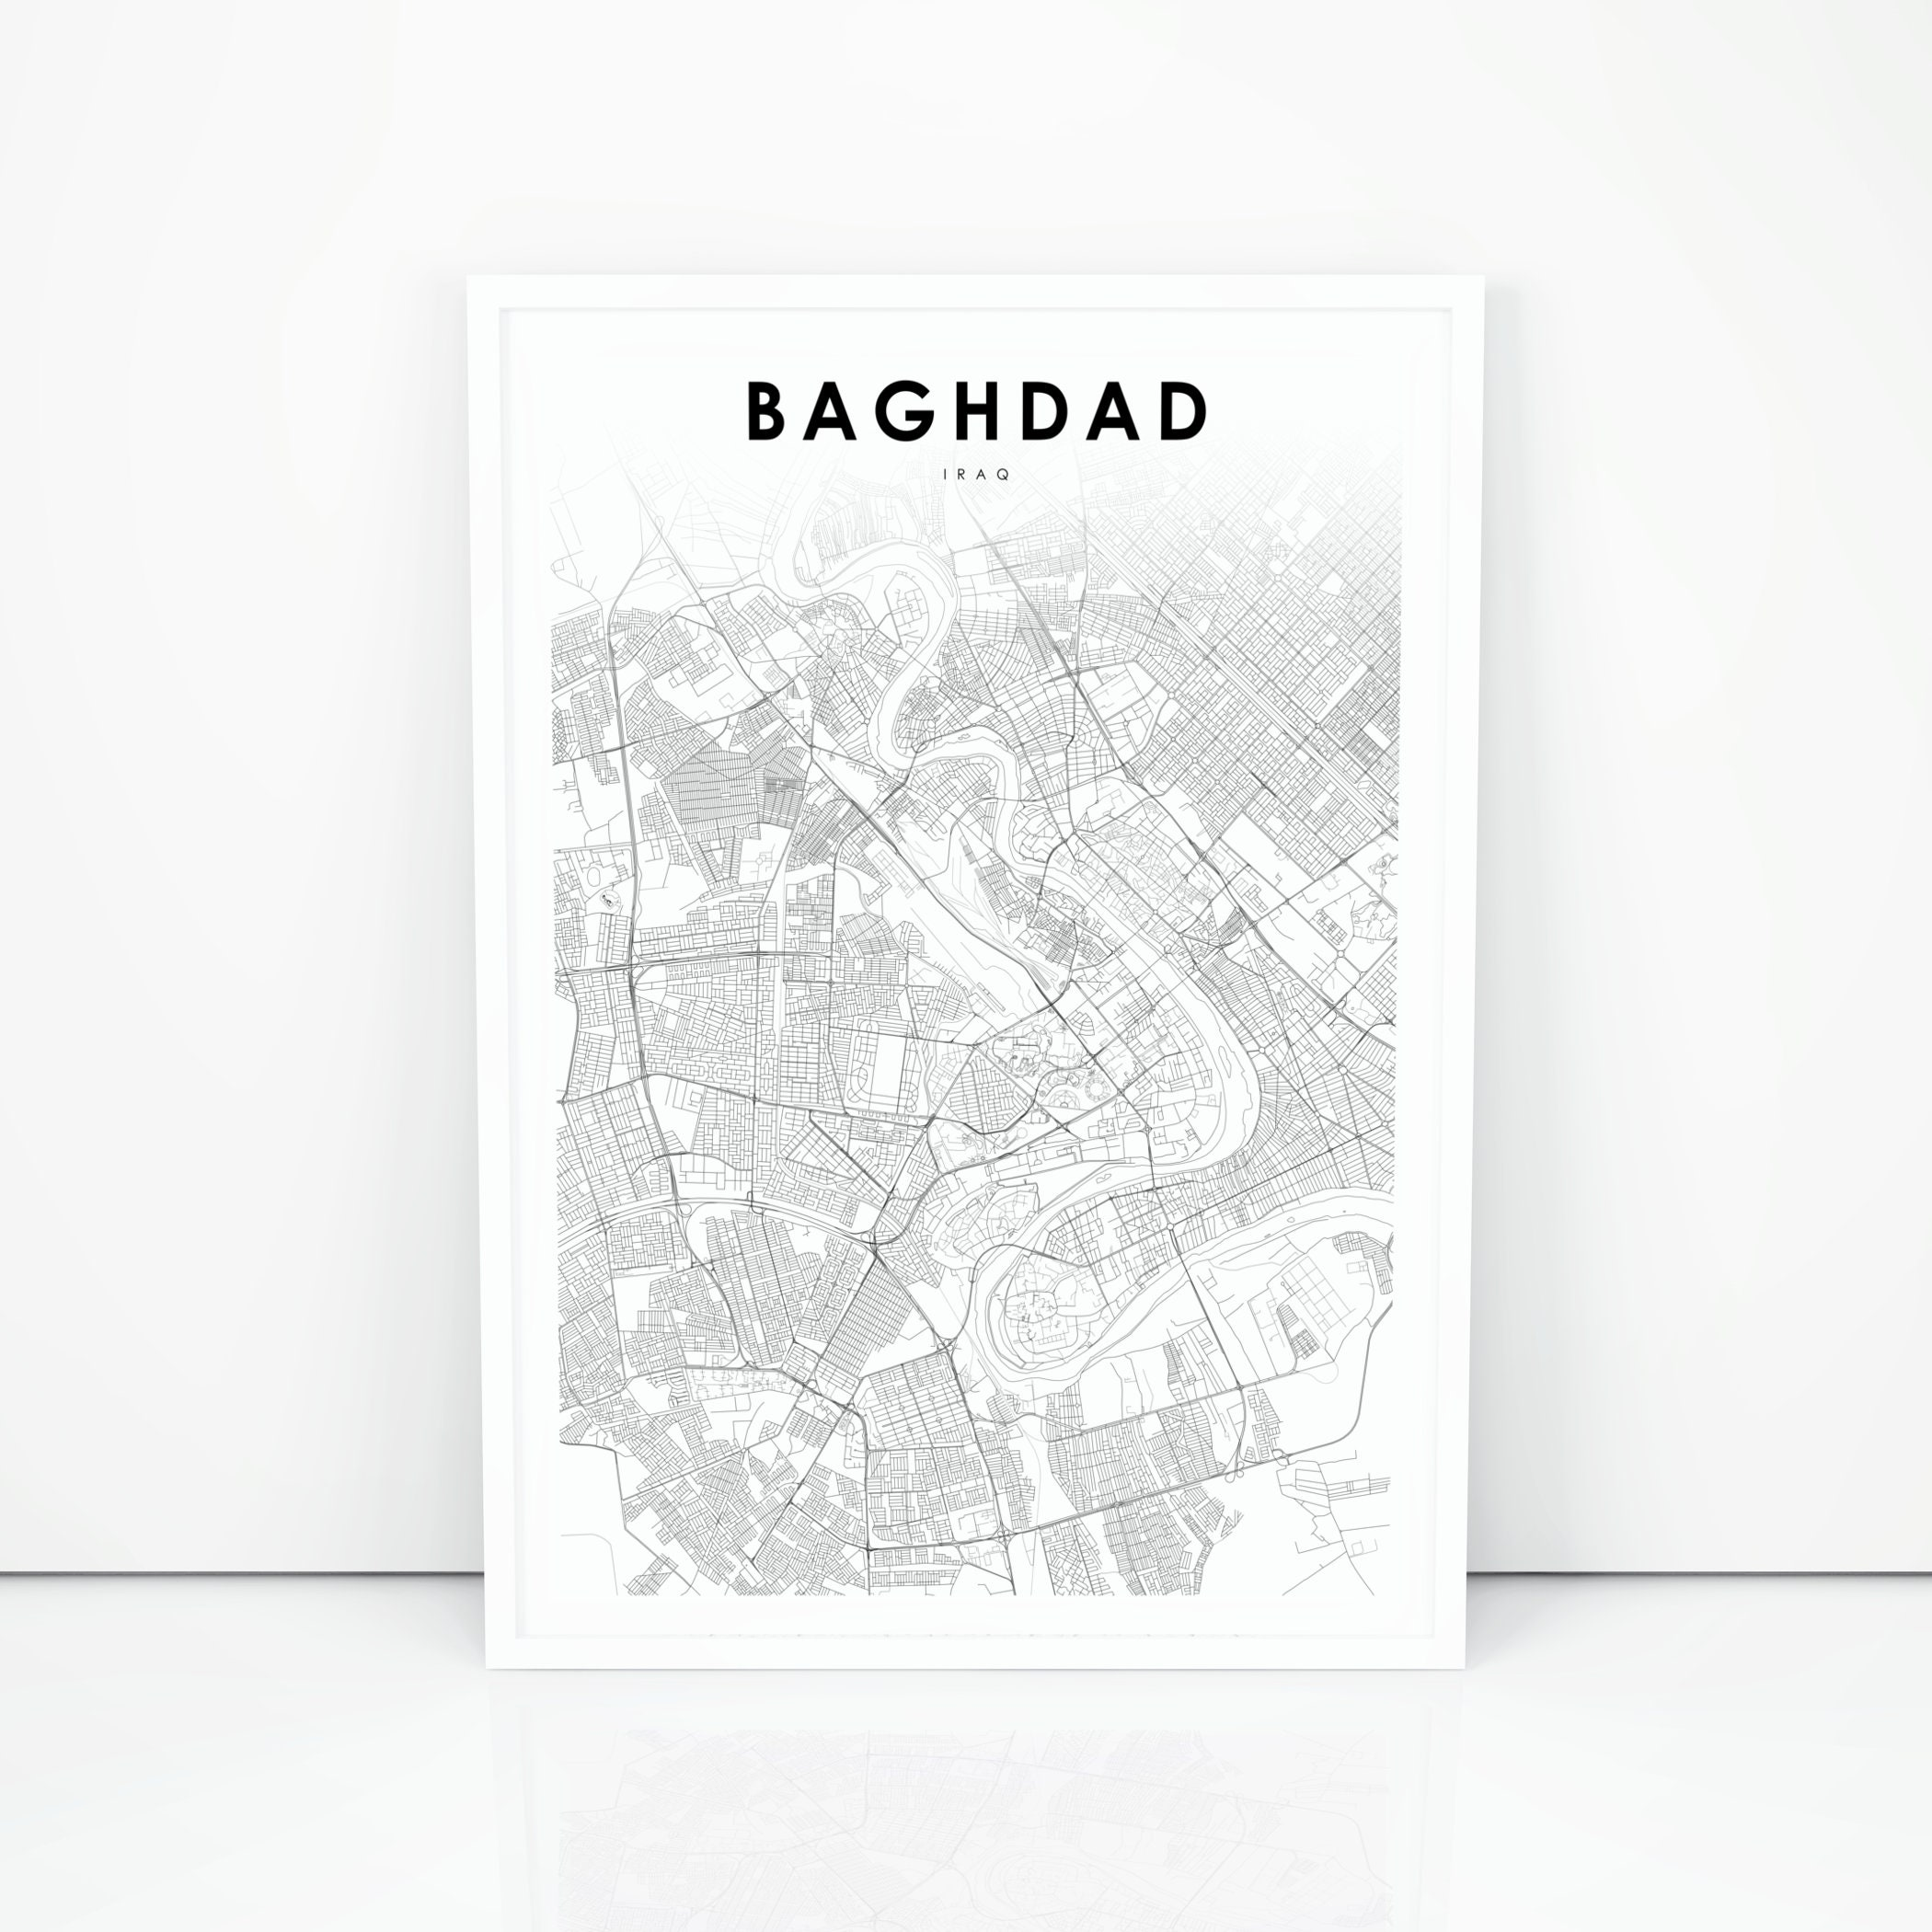 Baghdad Map Print, Iraq Map Art Poster, مدينة بغداد Bagdad, City Street  Road Map Print, Nursery Room Wall Office Decor, Printable Map